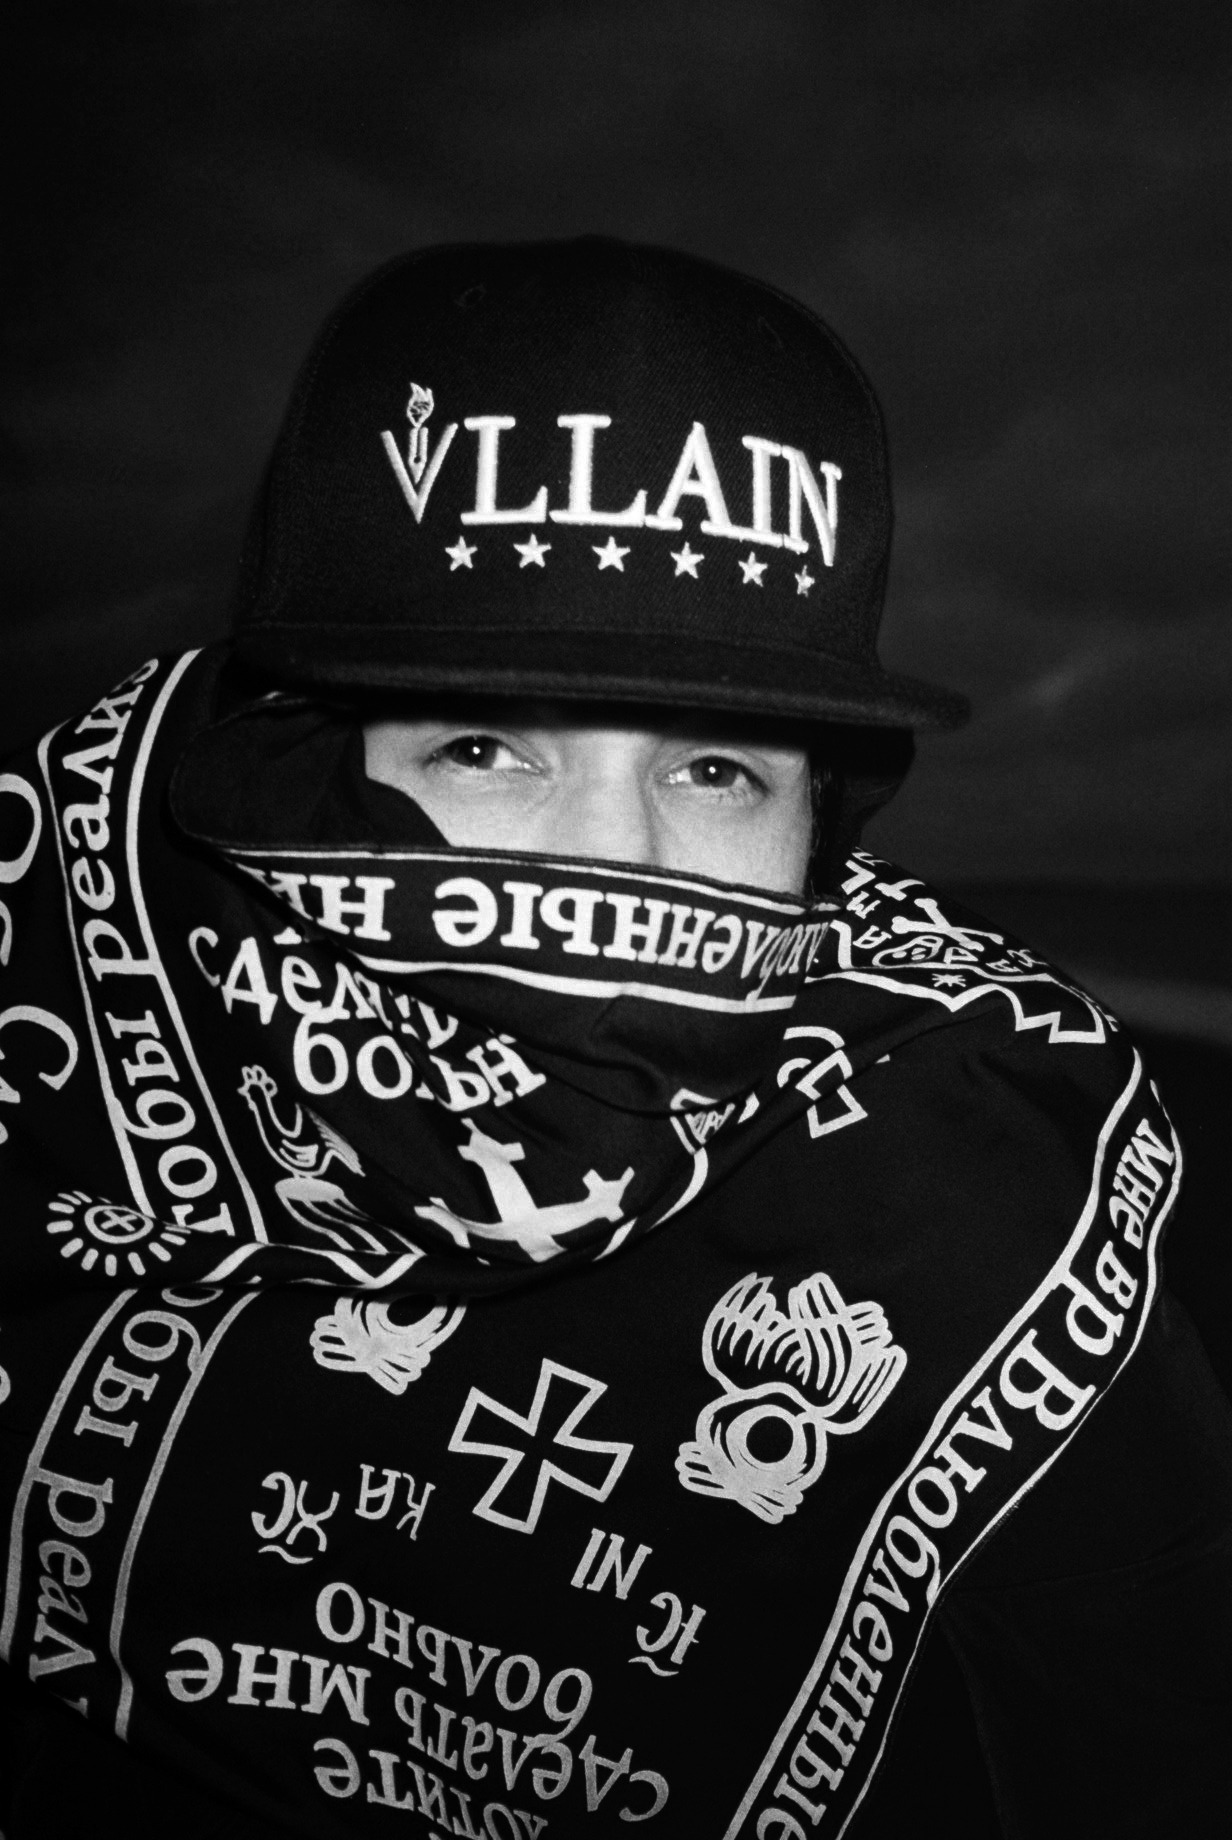 VILLAIN SHOT BY IDZONLY